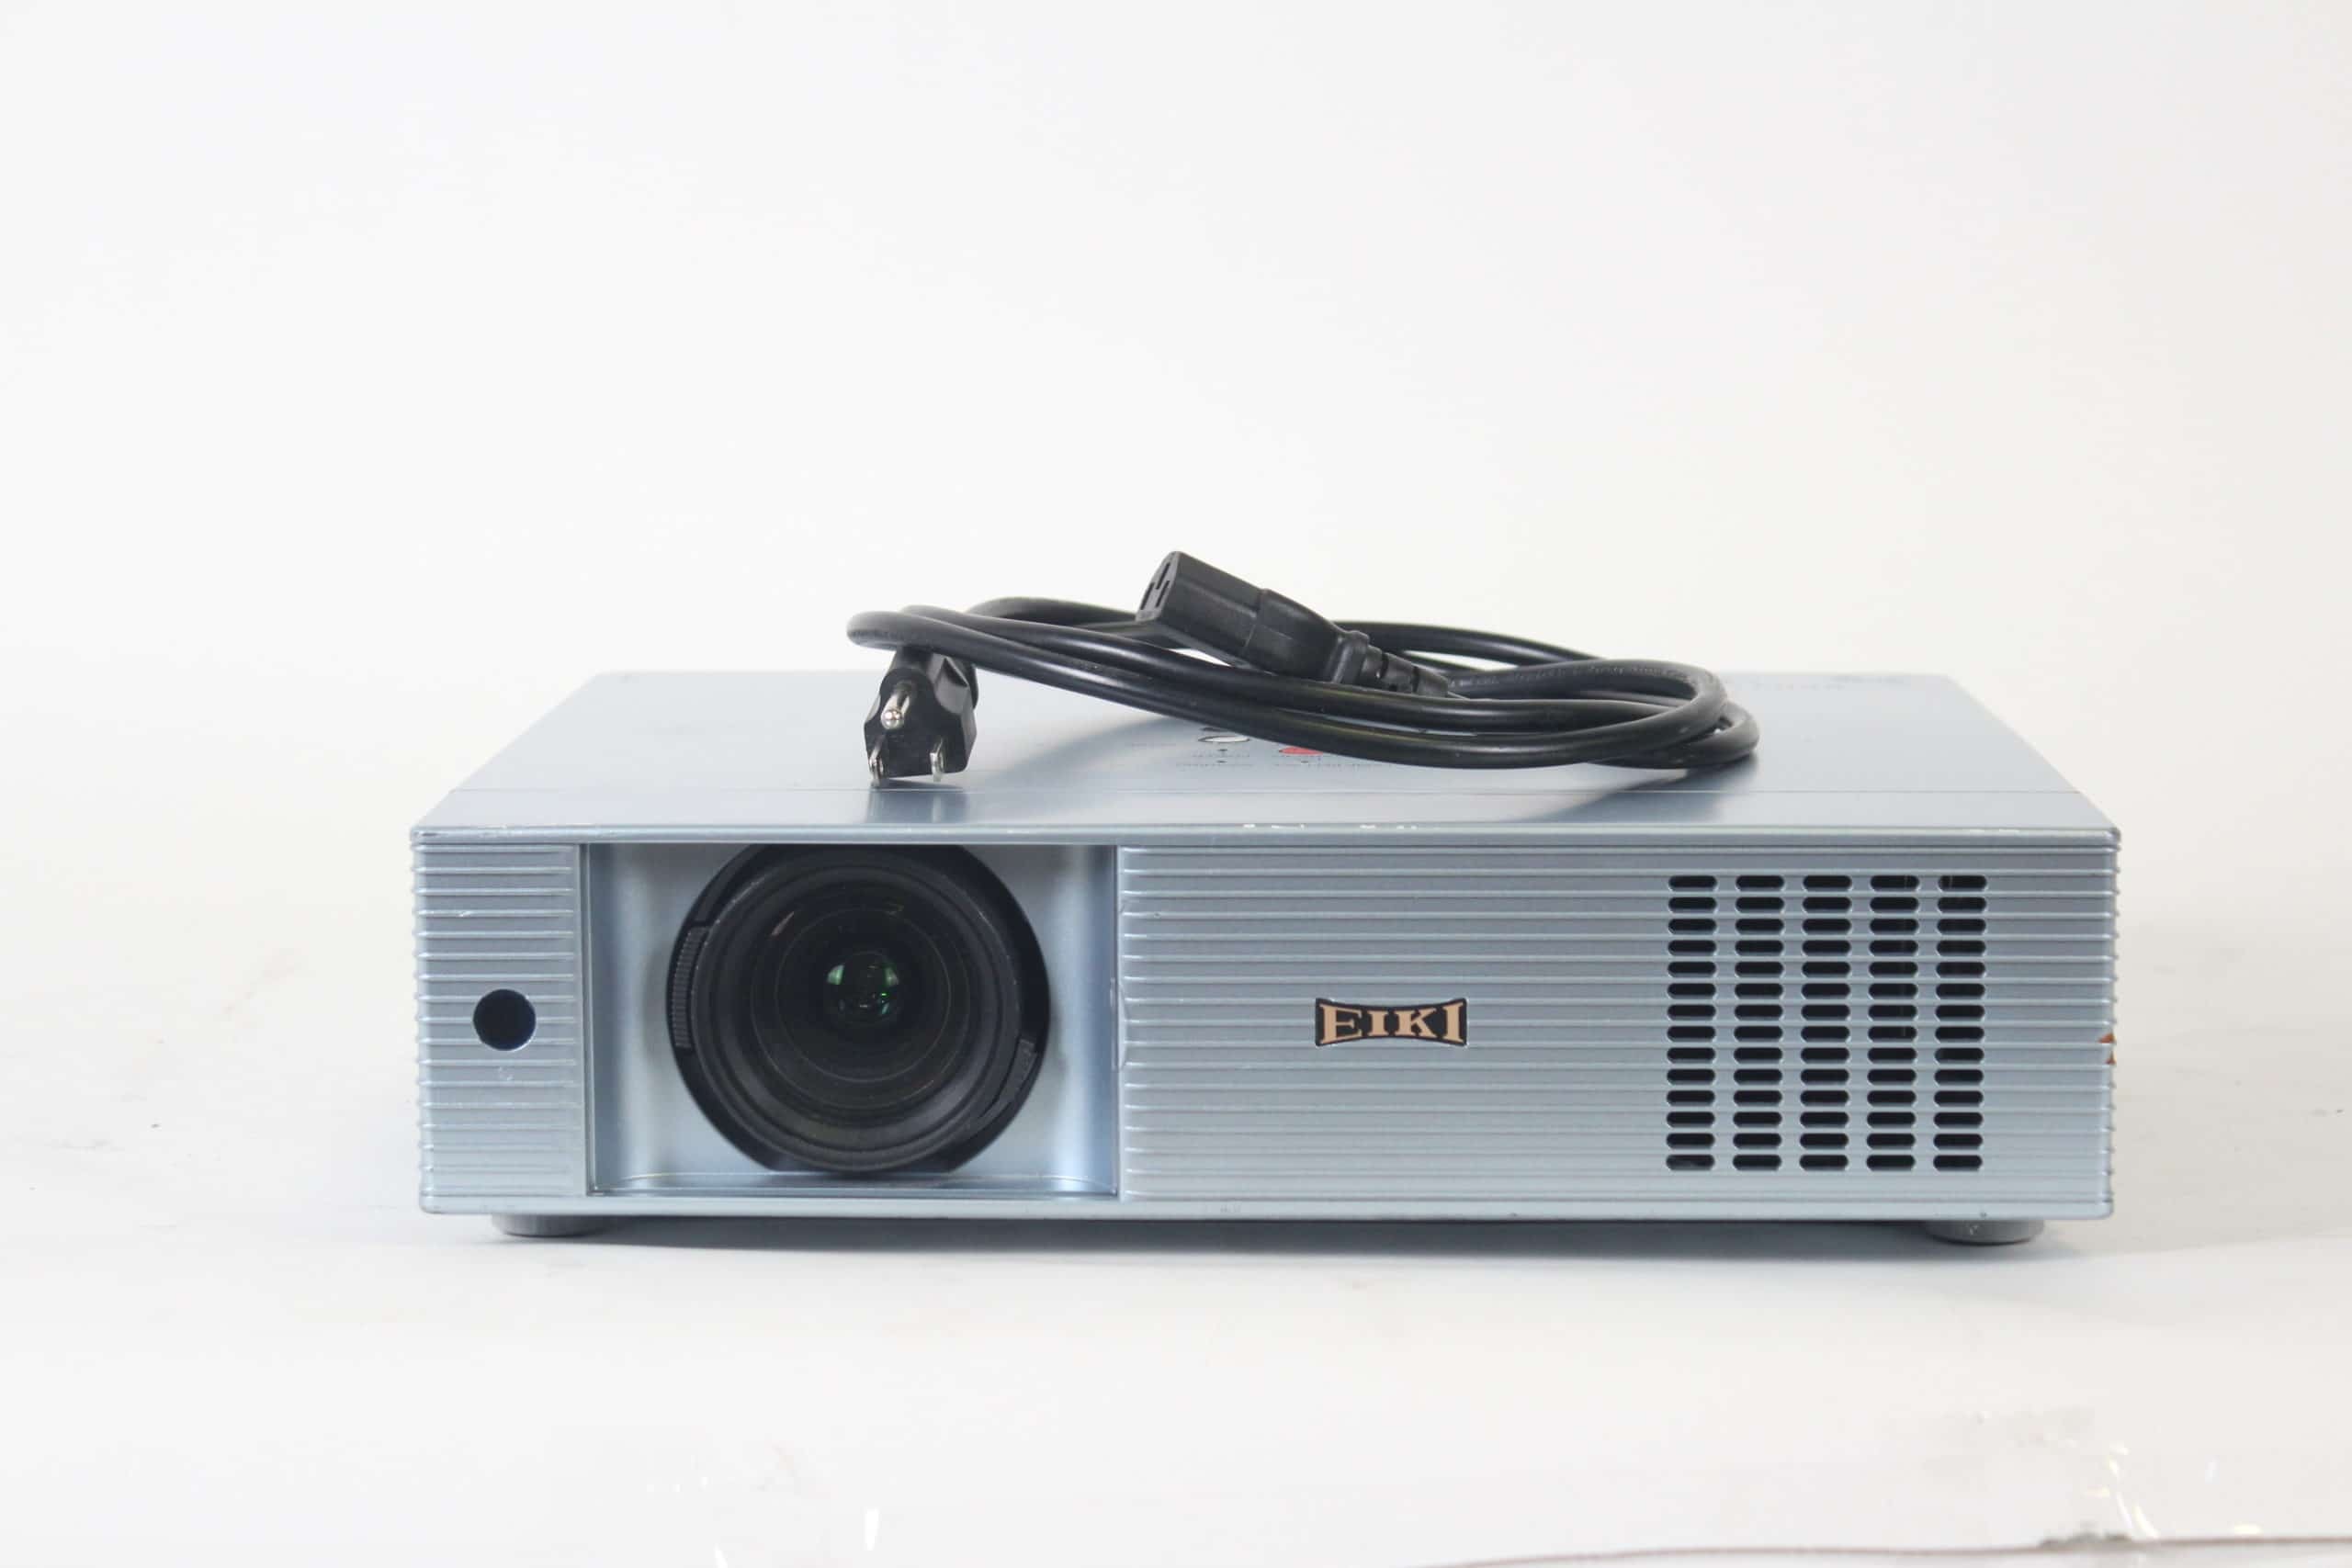 eiki-lc-xb43-xga-4500-lumen-3lcd-conference-room-projector-w-jelco-soft-case-1878-op-hours MAIN